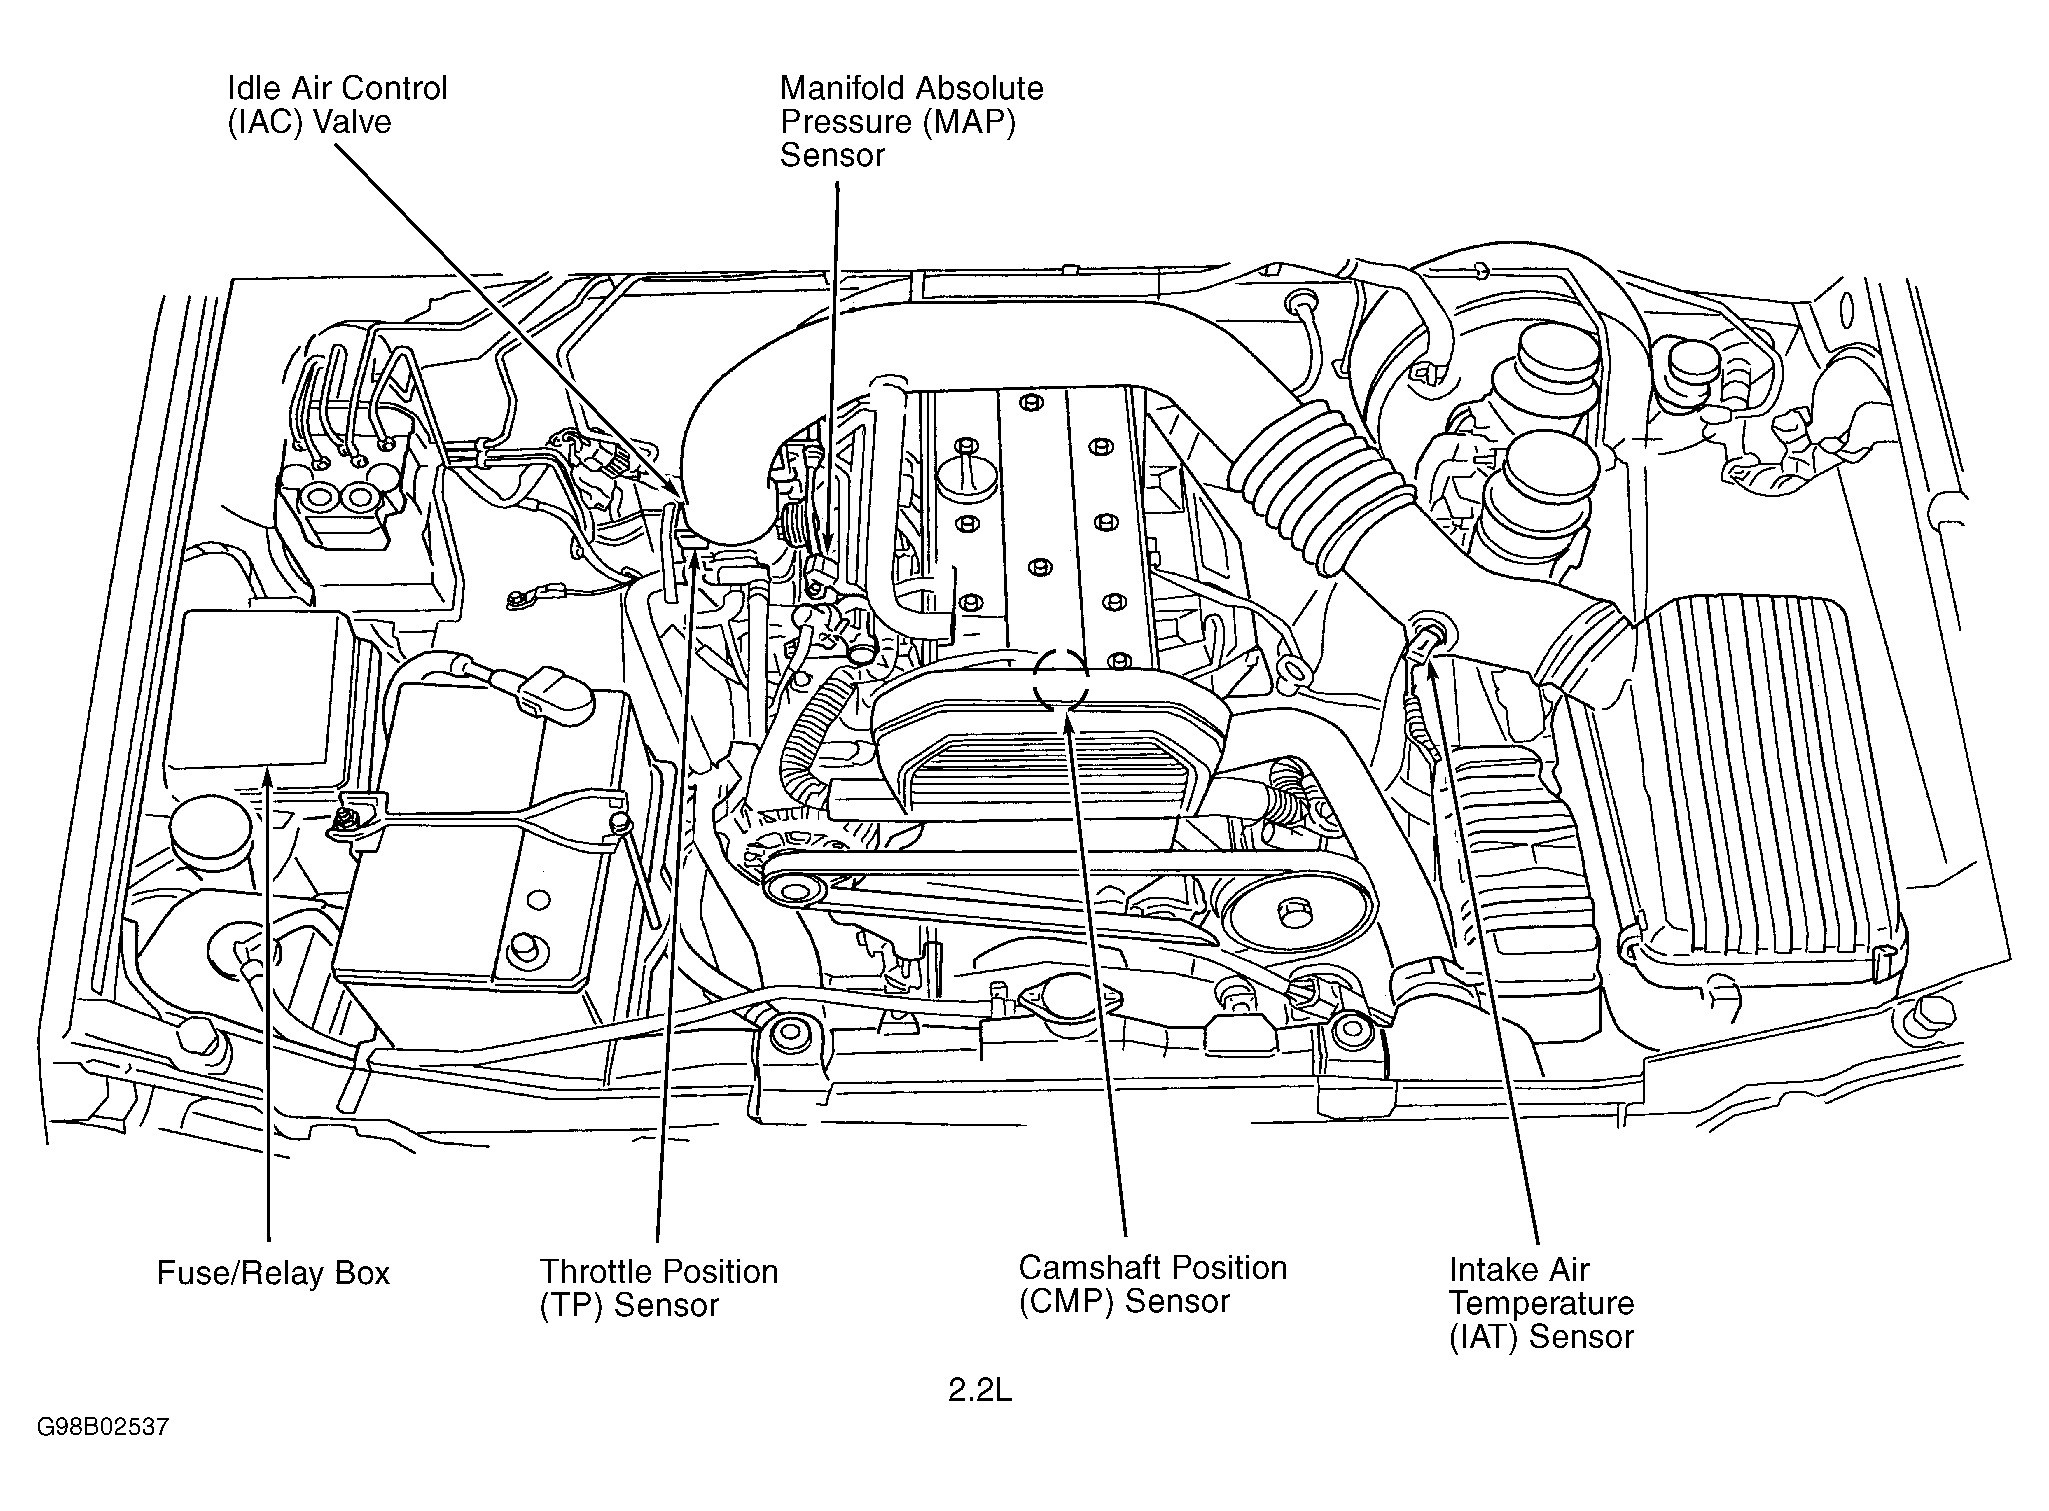 1995 Isuzu Rodeo Engine Diagram Circuit Diagram Symbols \u2022 1995 Isuzu  Rodeo Radio Wiring Diagram 1995 Isuzu Rodeo Starter Diagram